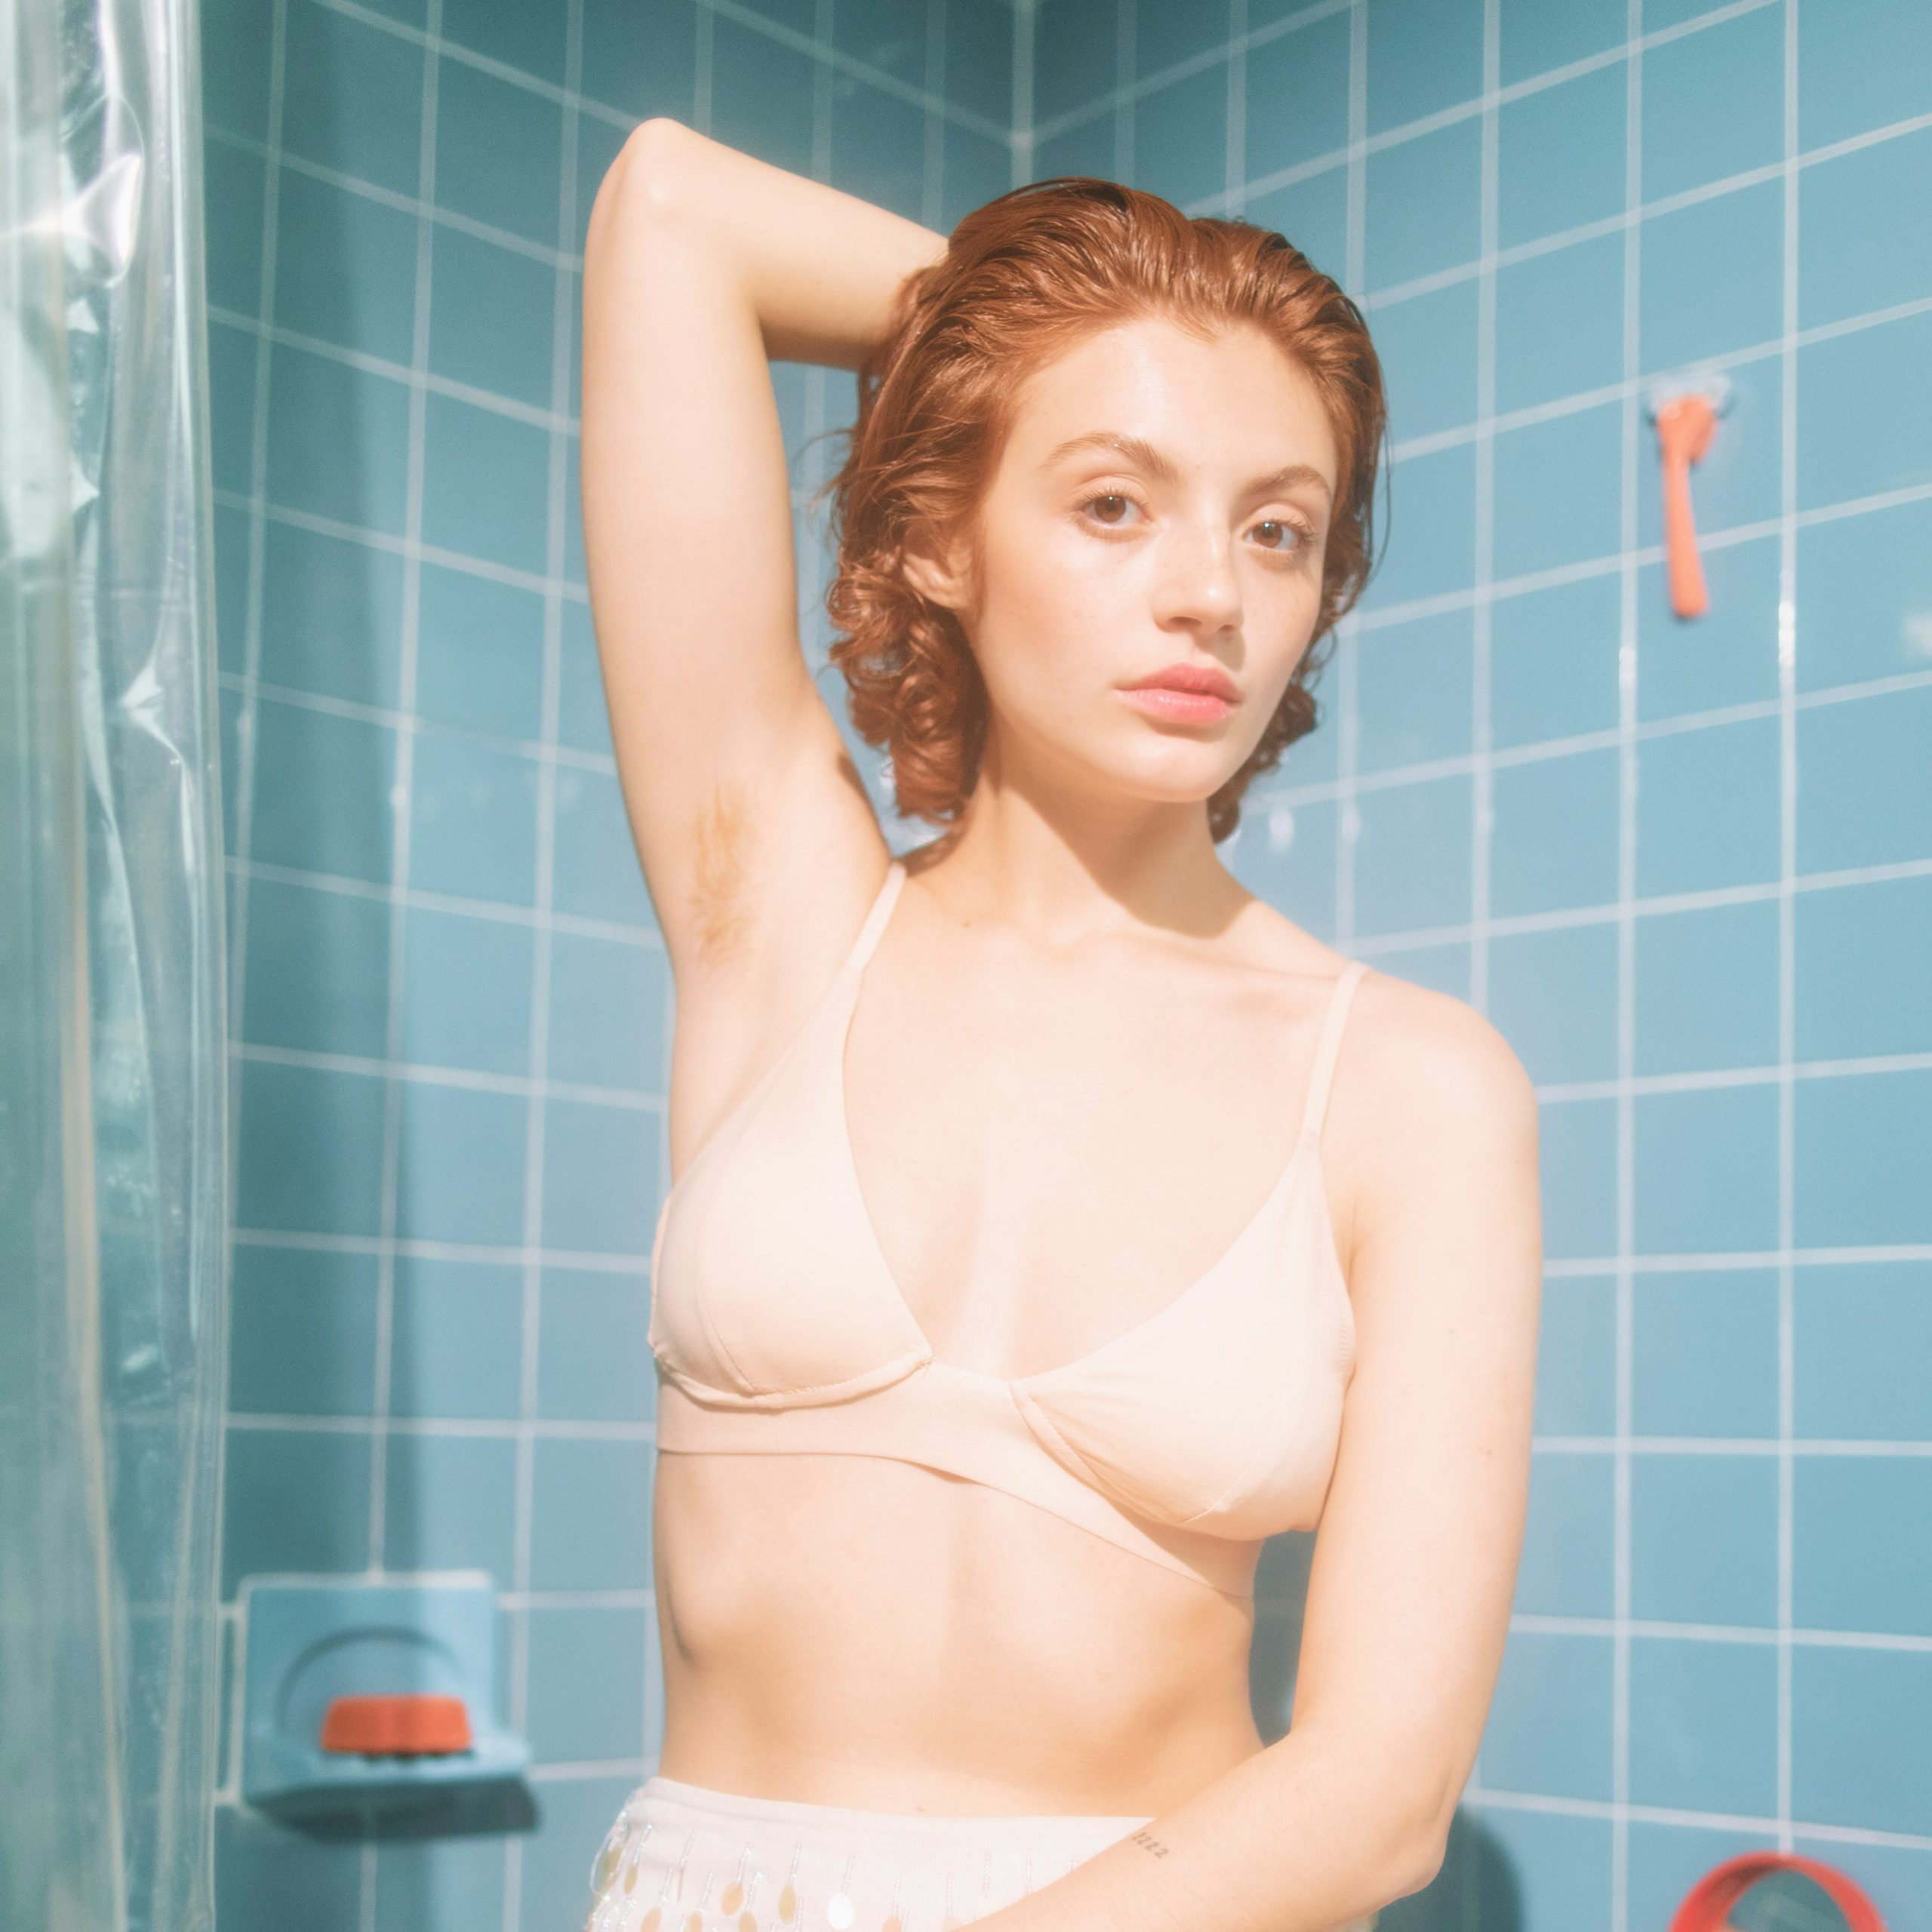 woman in blue shower raising her arm to show hairy armpit